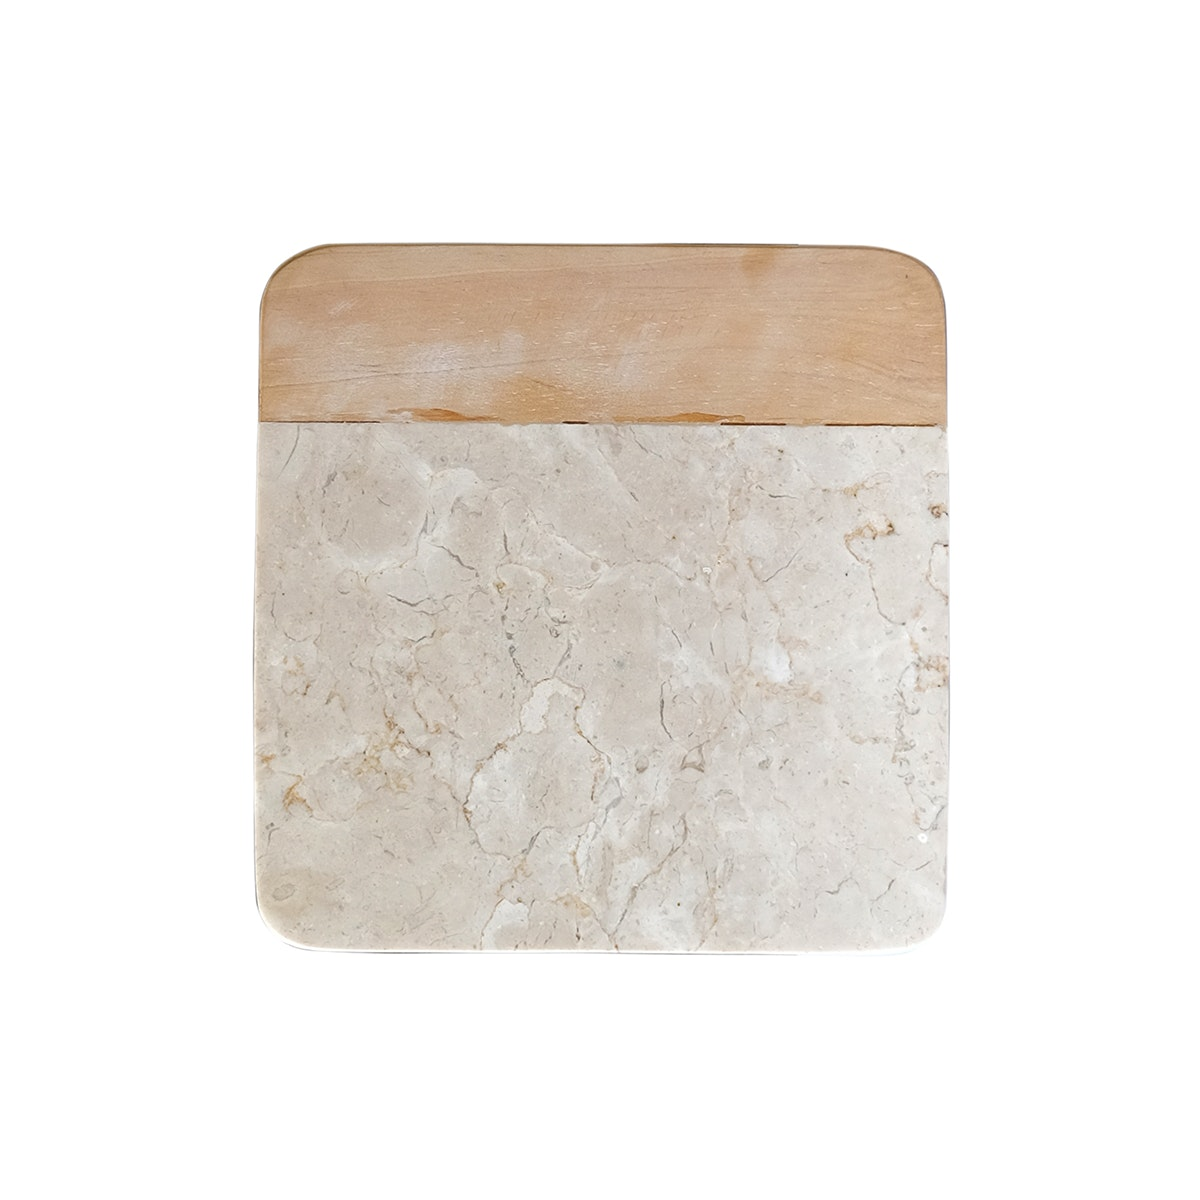 VIE FOR LIVING Cutting Board Marble 1148 (S)